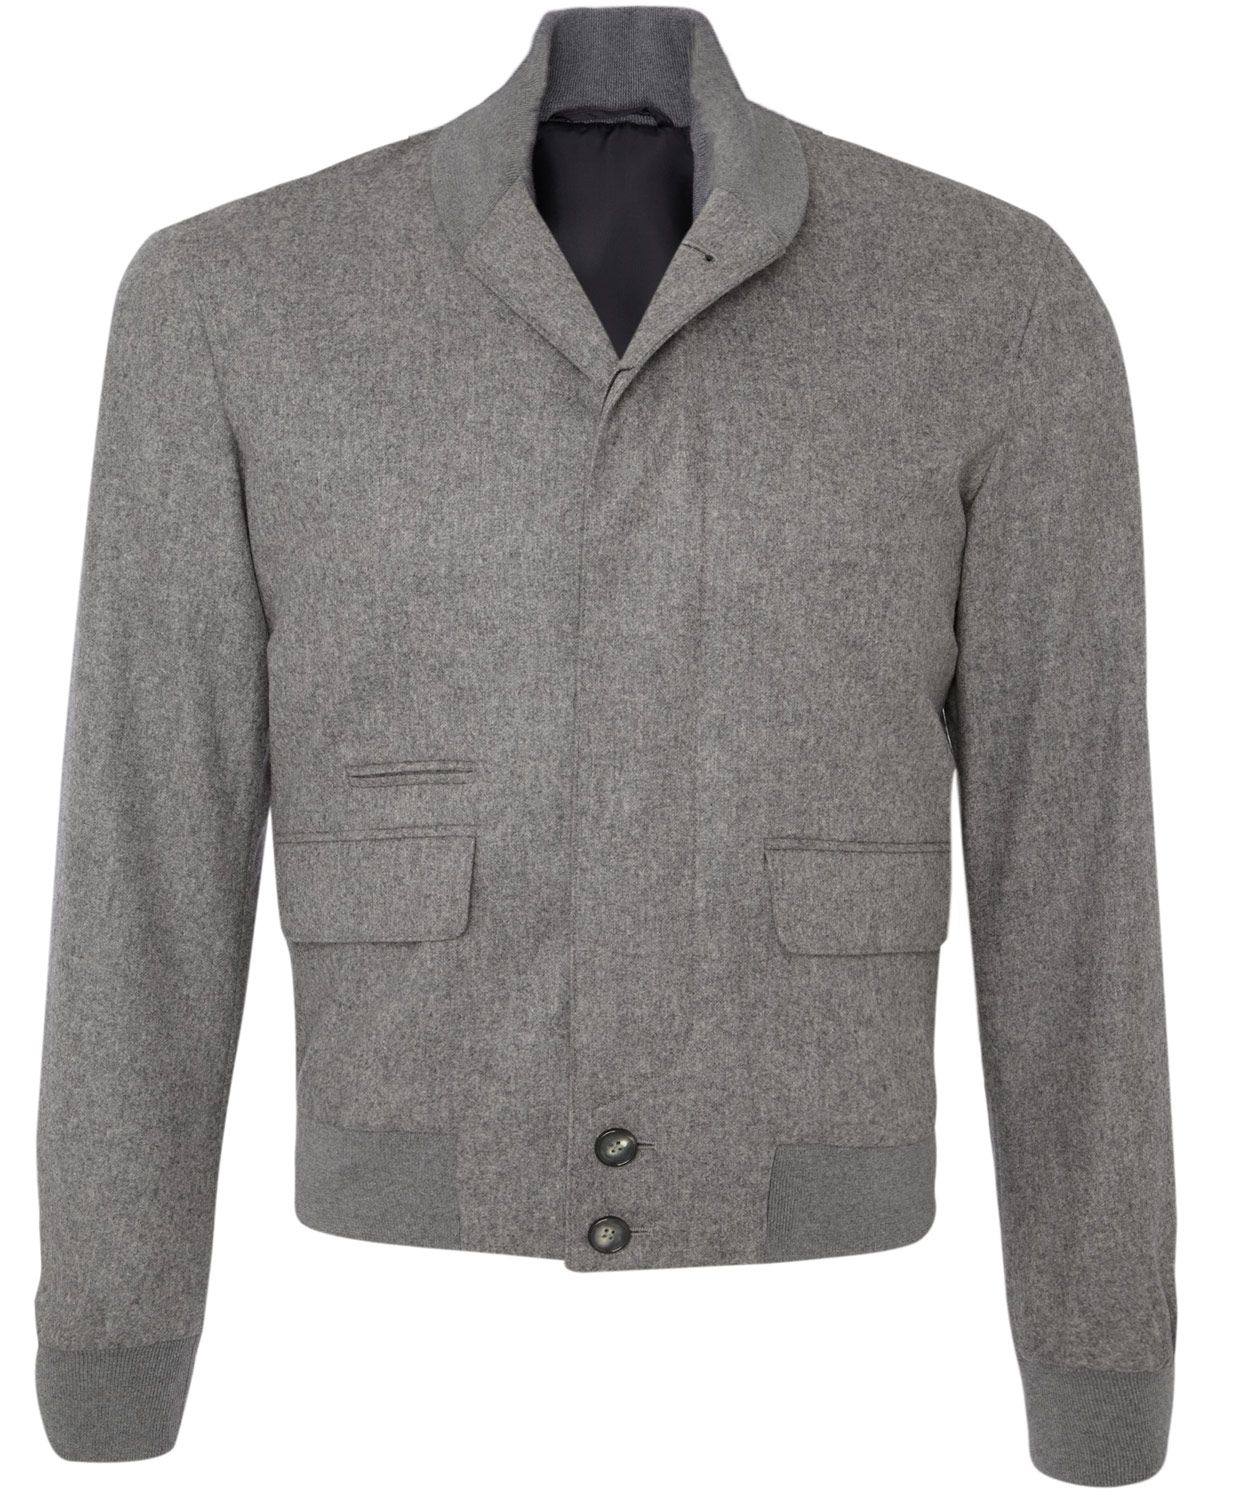 Grey flannel jacket  Alexander McQueen Grey Flannel Bomber Jacket  Menus jackets by